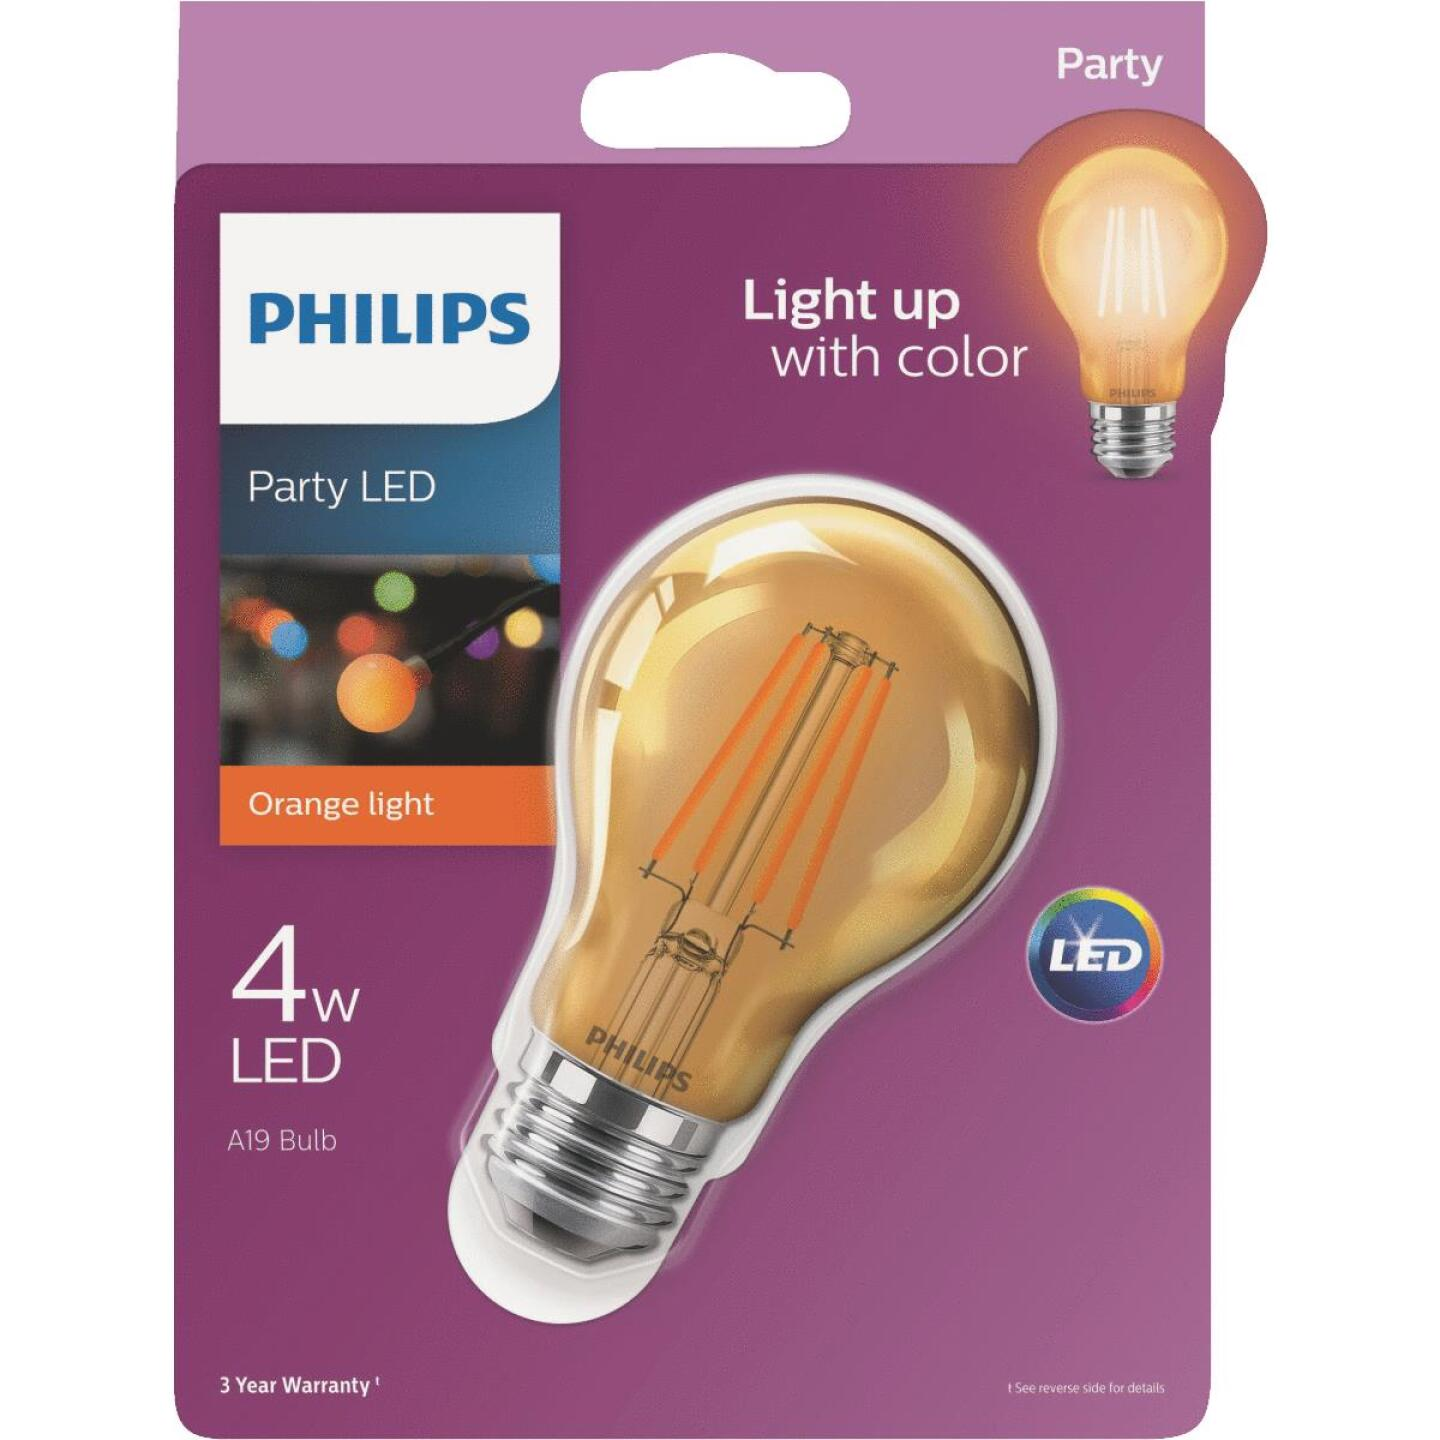 Philips Orange A19 Medium 4W Indoor/Outdoor LED Decorative Party Light Bulb Image 1